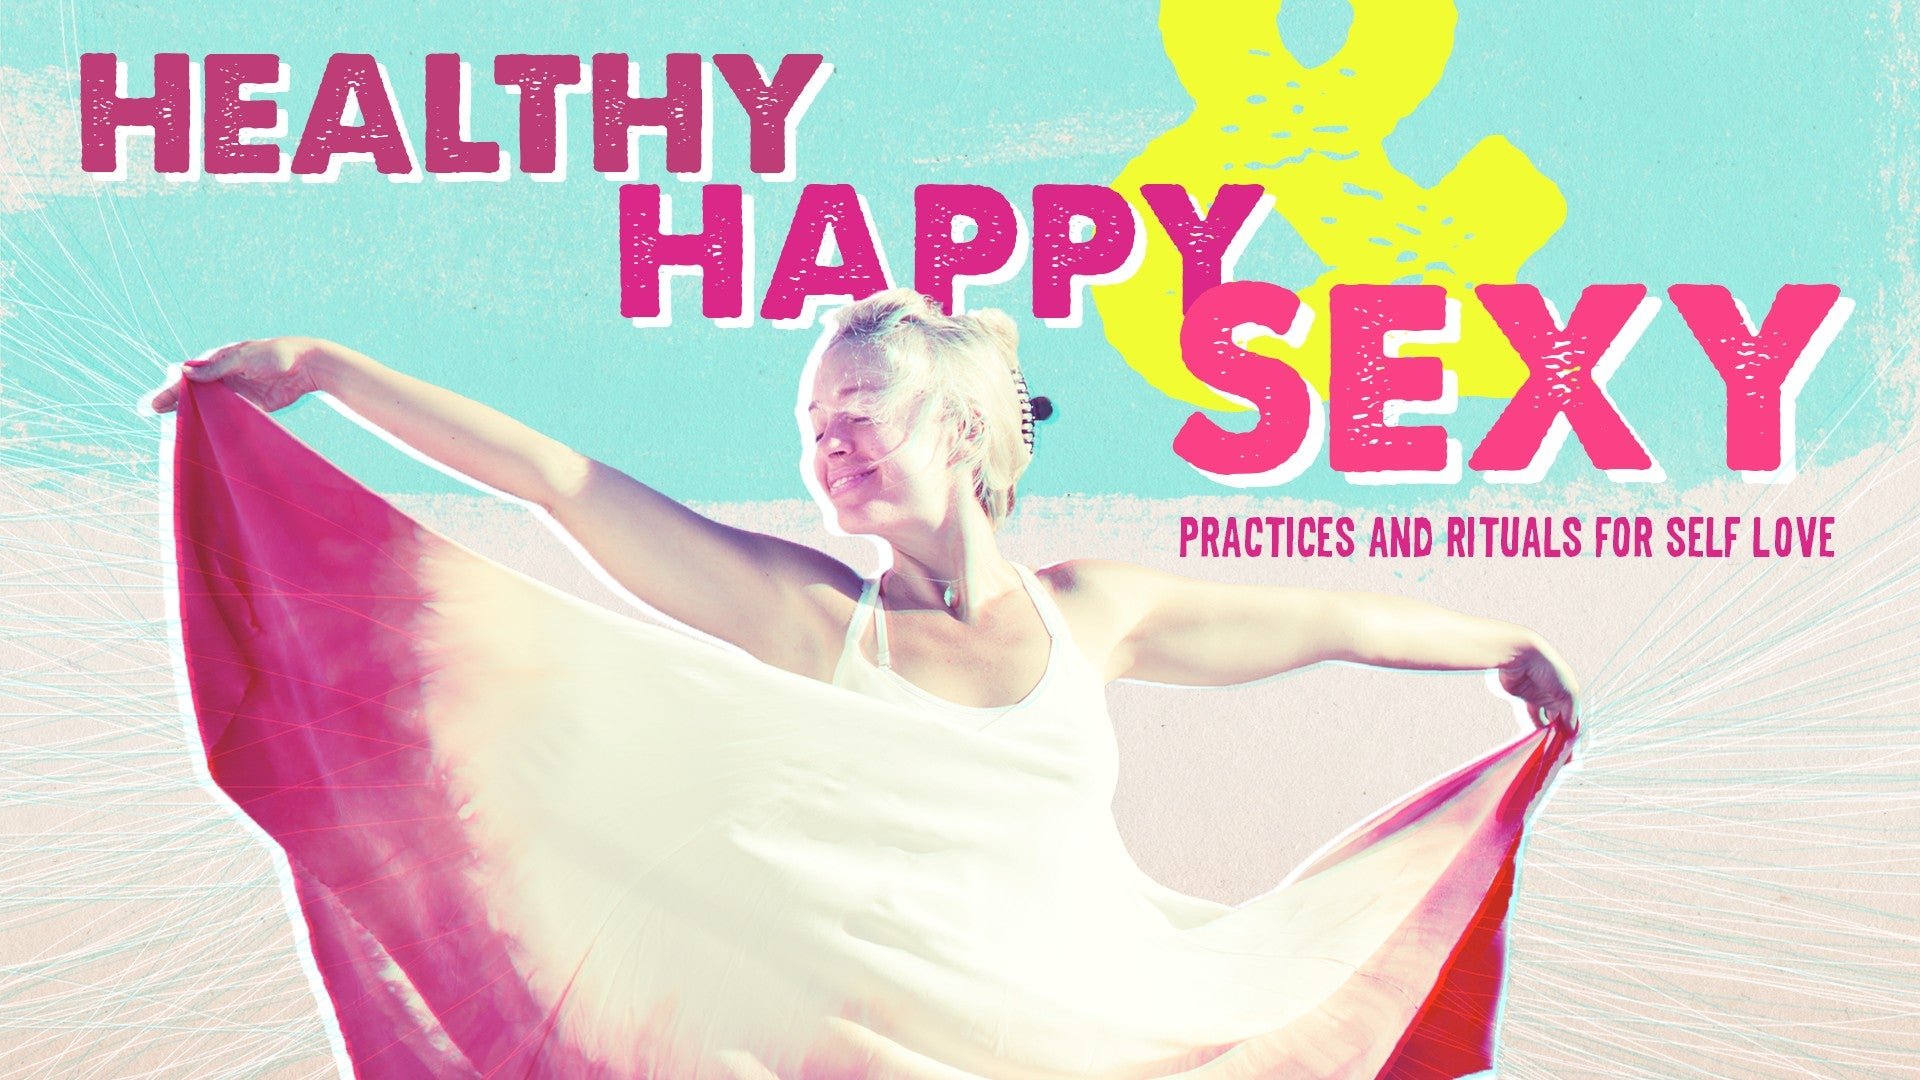 Healthy Happy Sexy Artwork